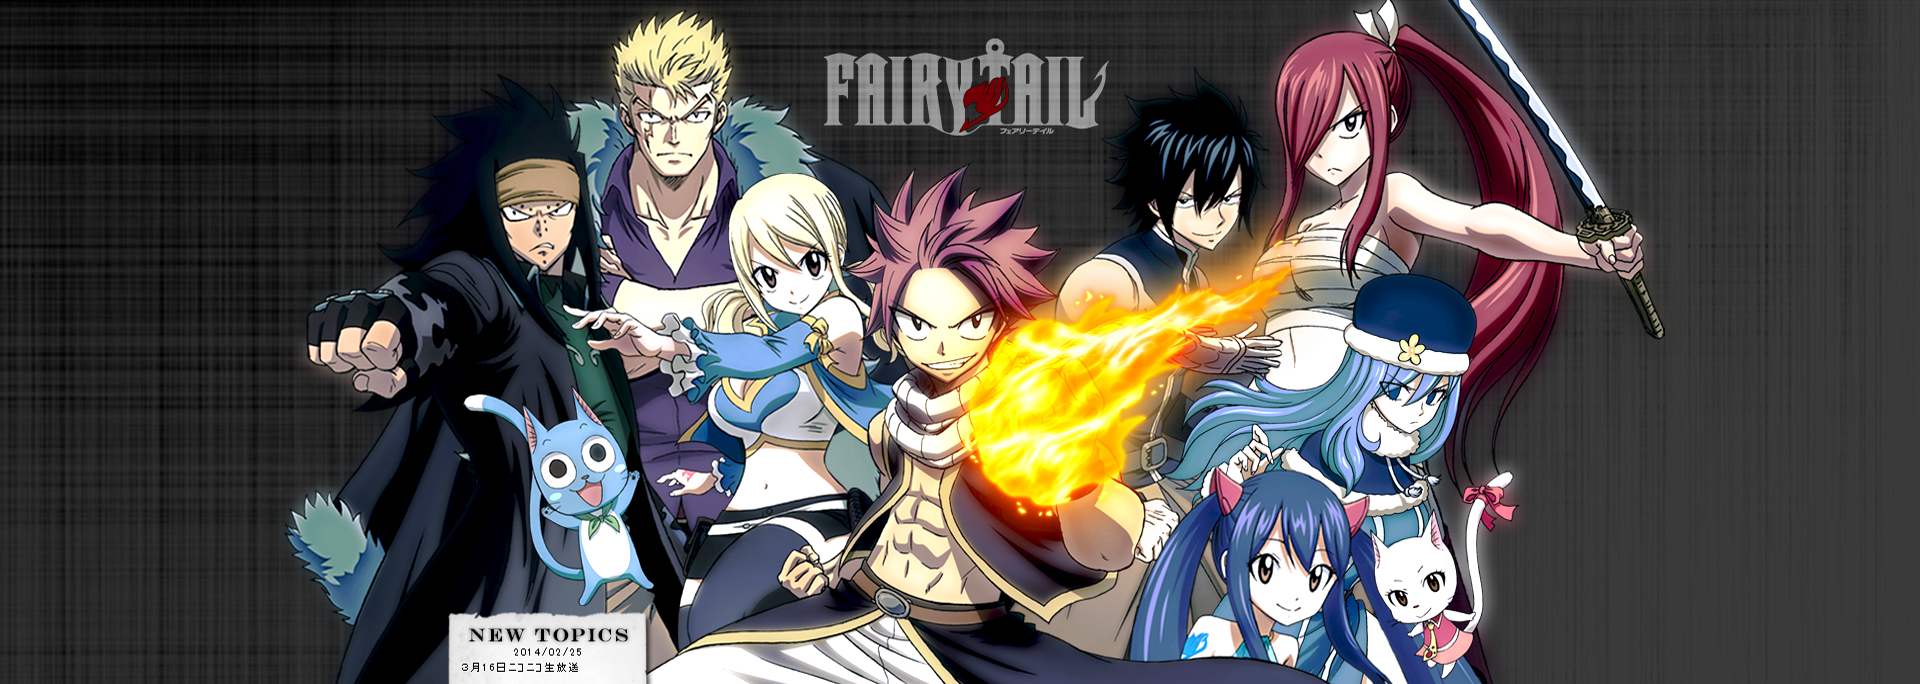 Fairy Tail E250 VF